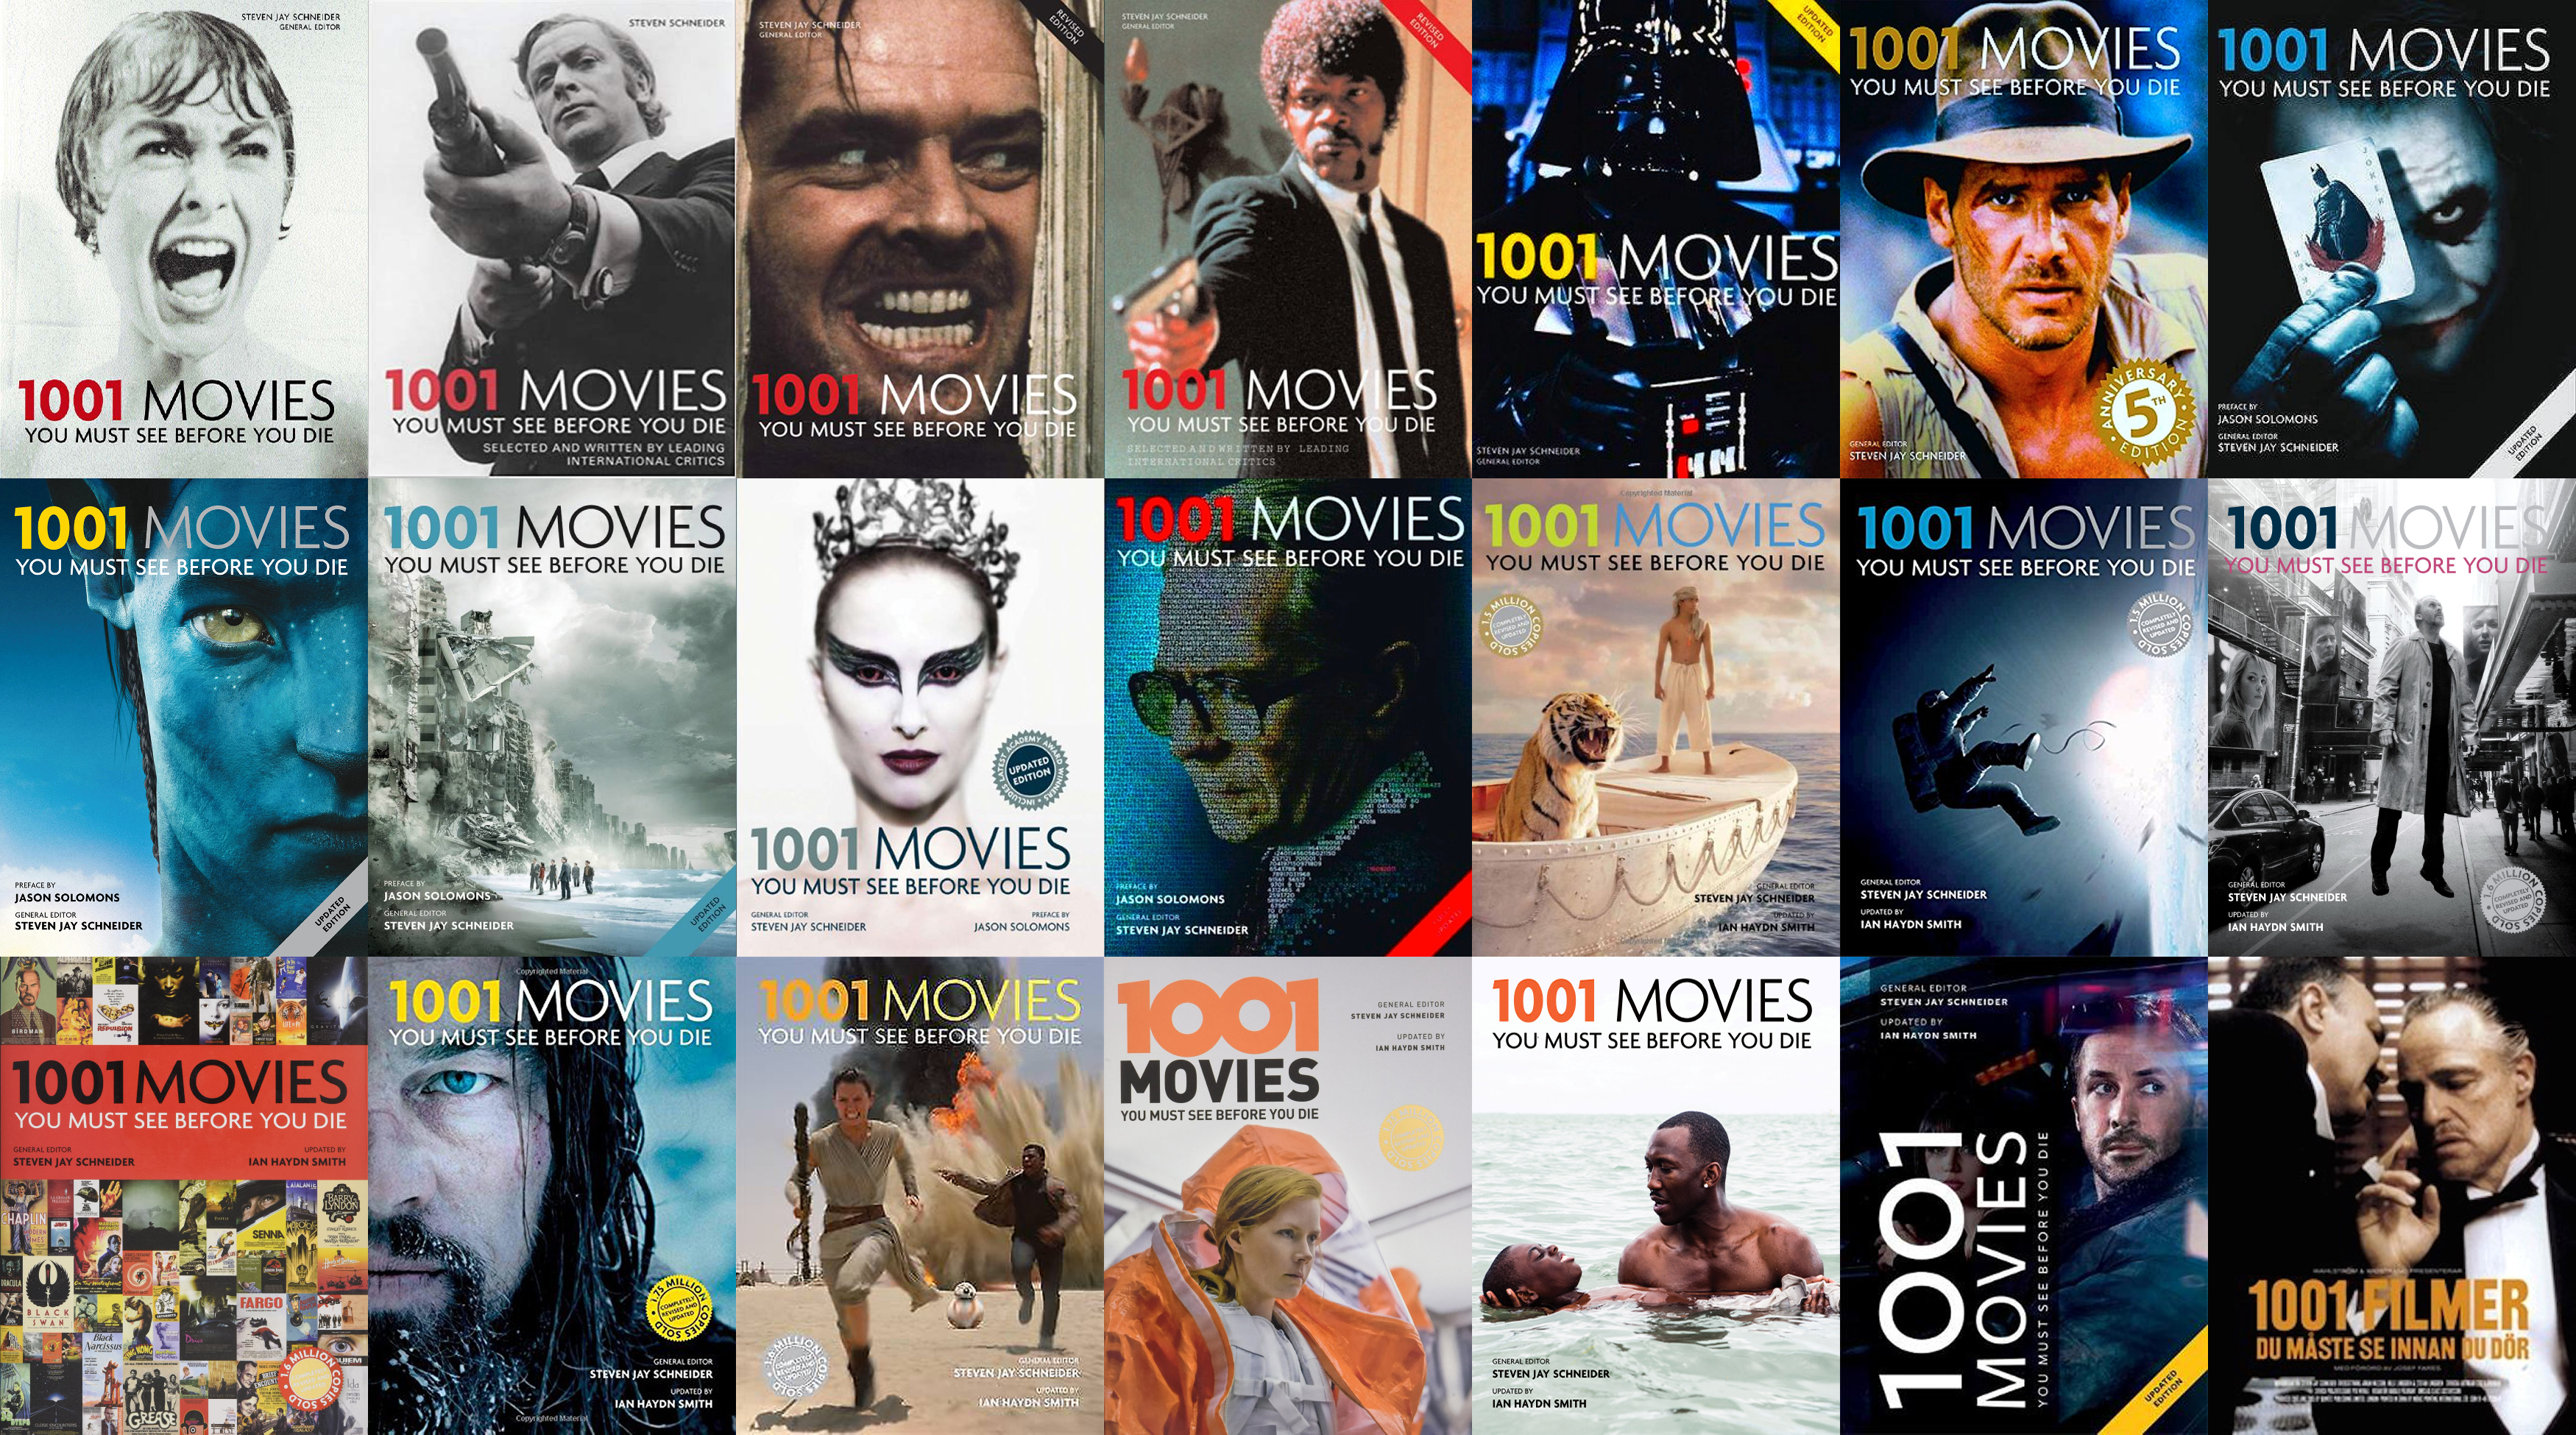 The Film Lover S Check List 1001 Movies You Must See Before You Die